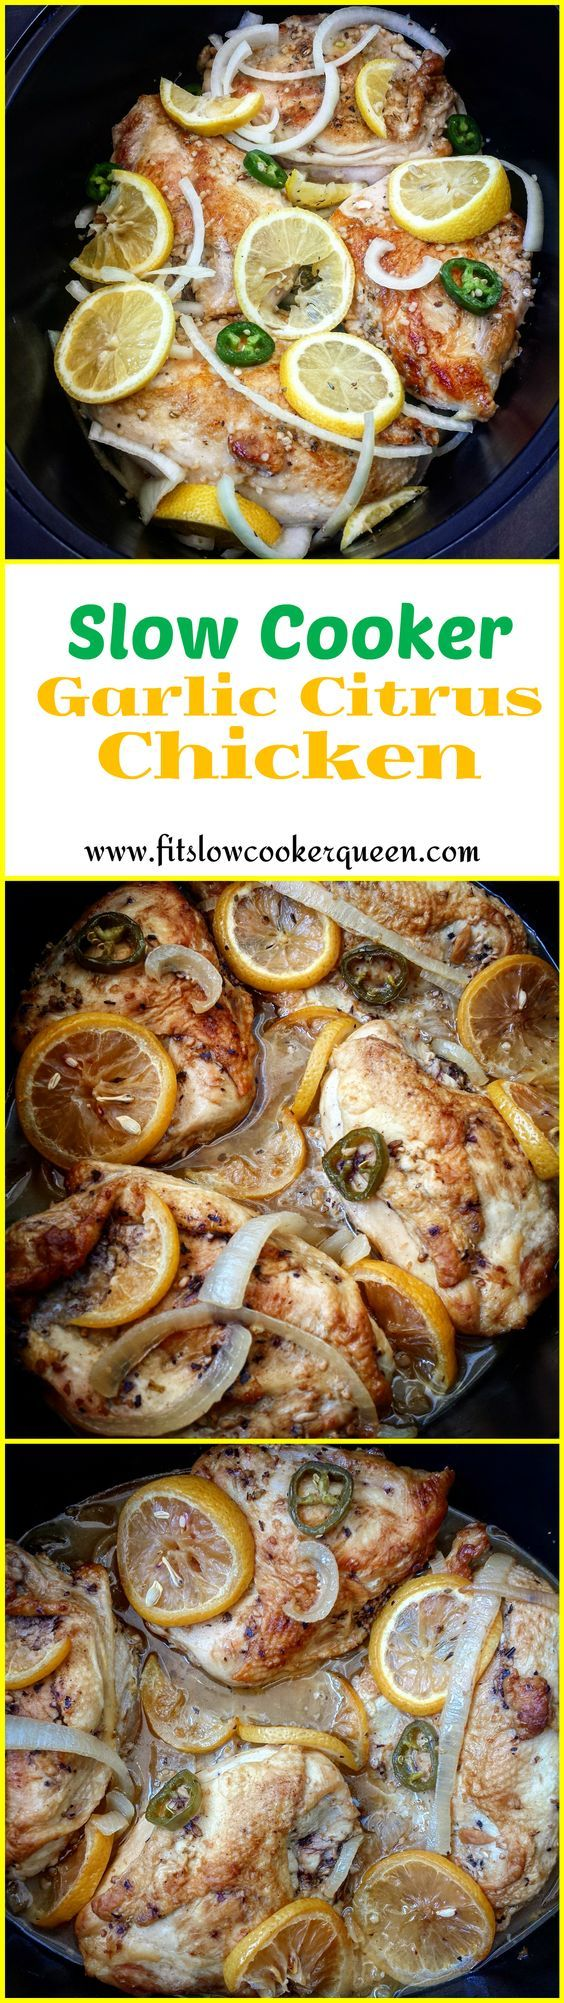 Jalapenos add a little heat to this Cuban mojo (garlic citrus marinade) inspired crock-pot dish. This slow cooker meal can be made with chicken or pork.